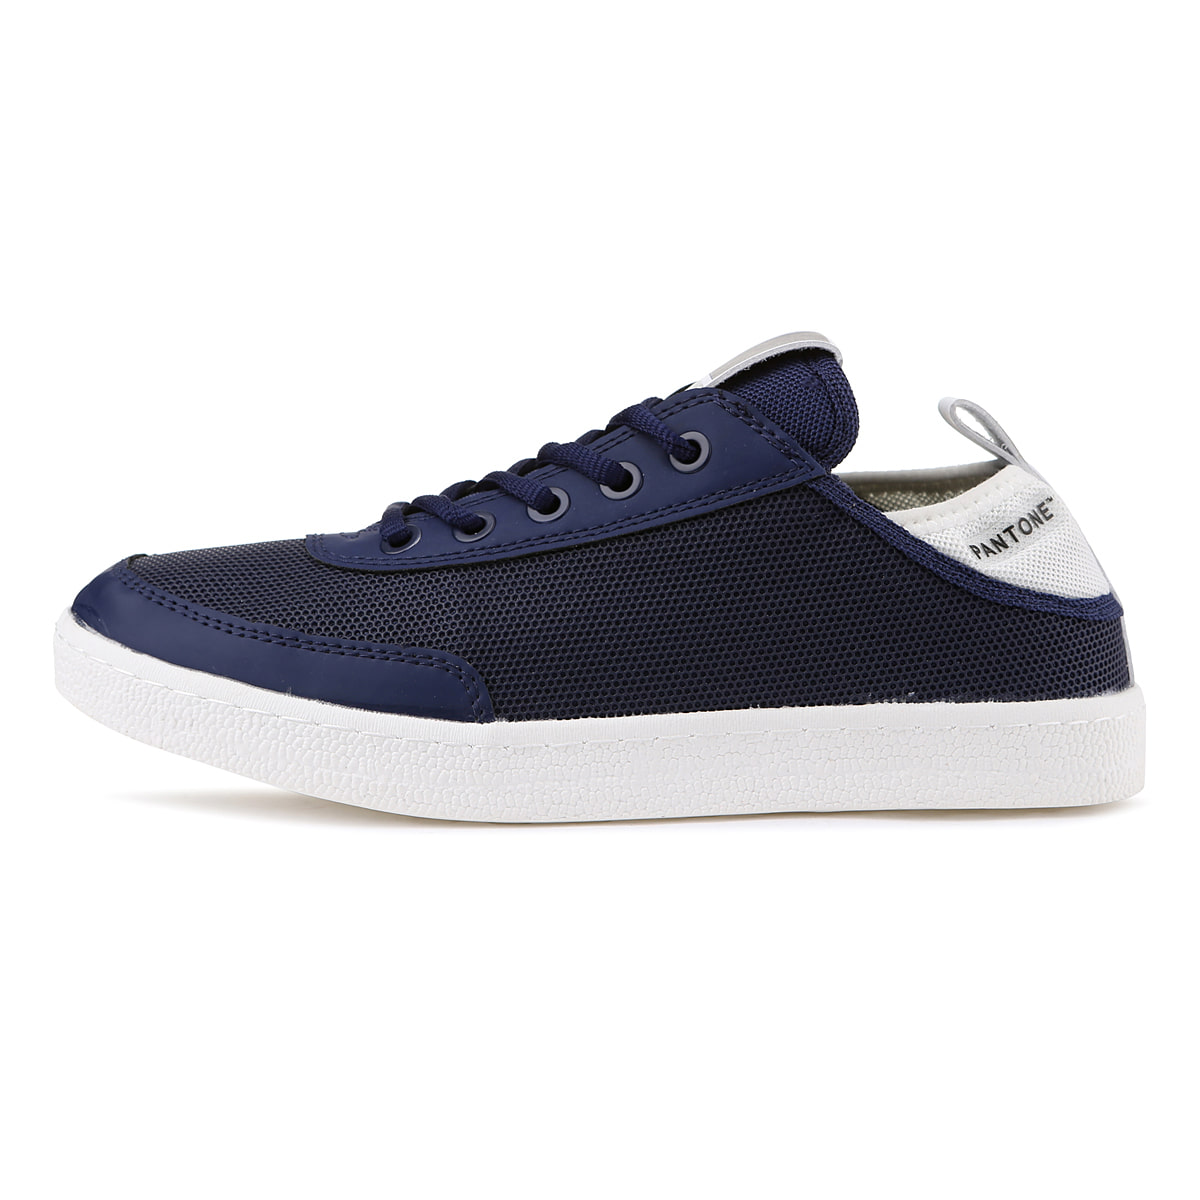 [팬톤]STAR FISH Sneakers_Blue Depths [P181SE02NV]